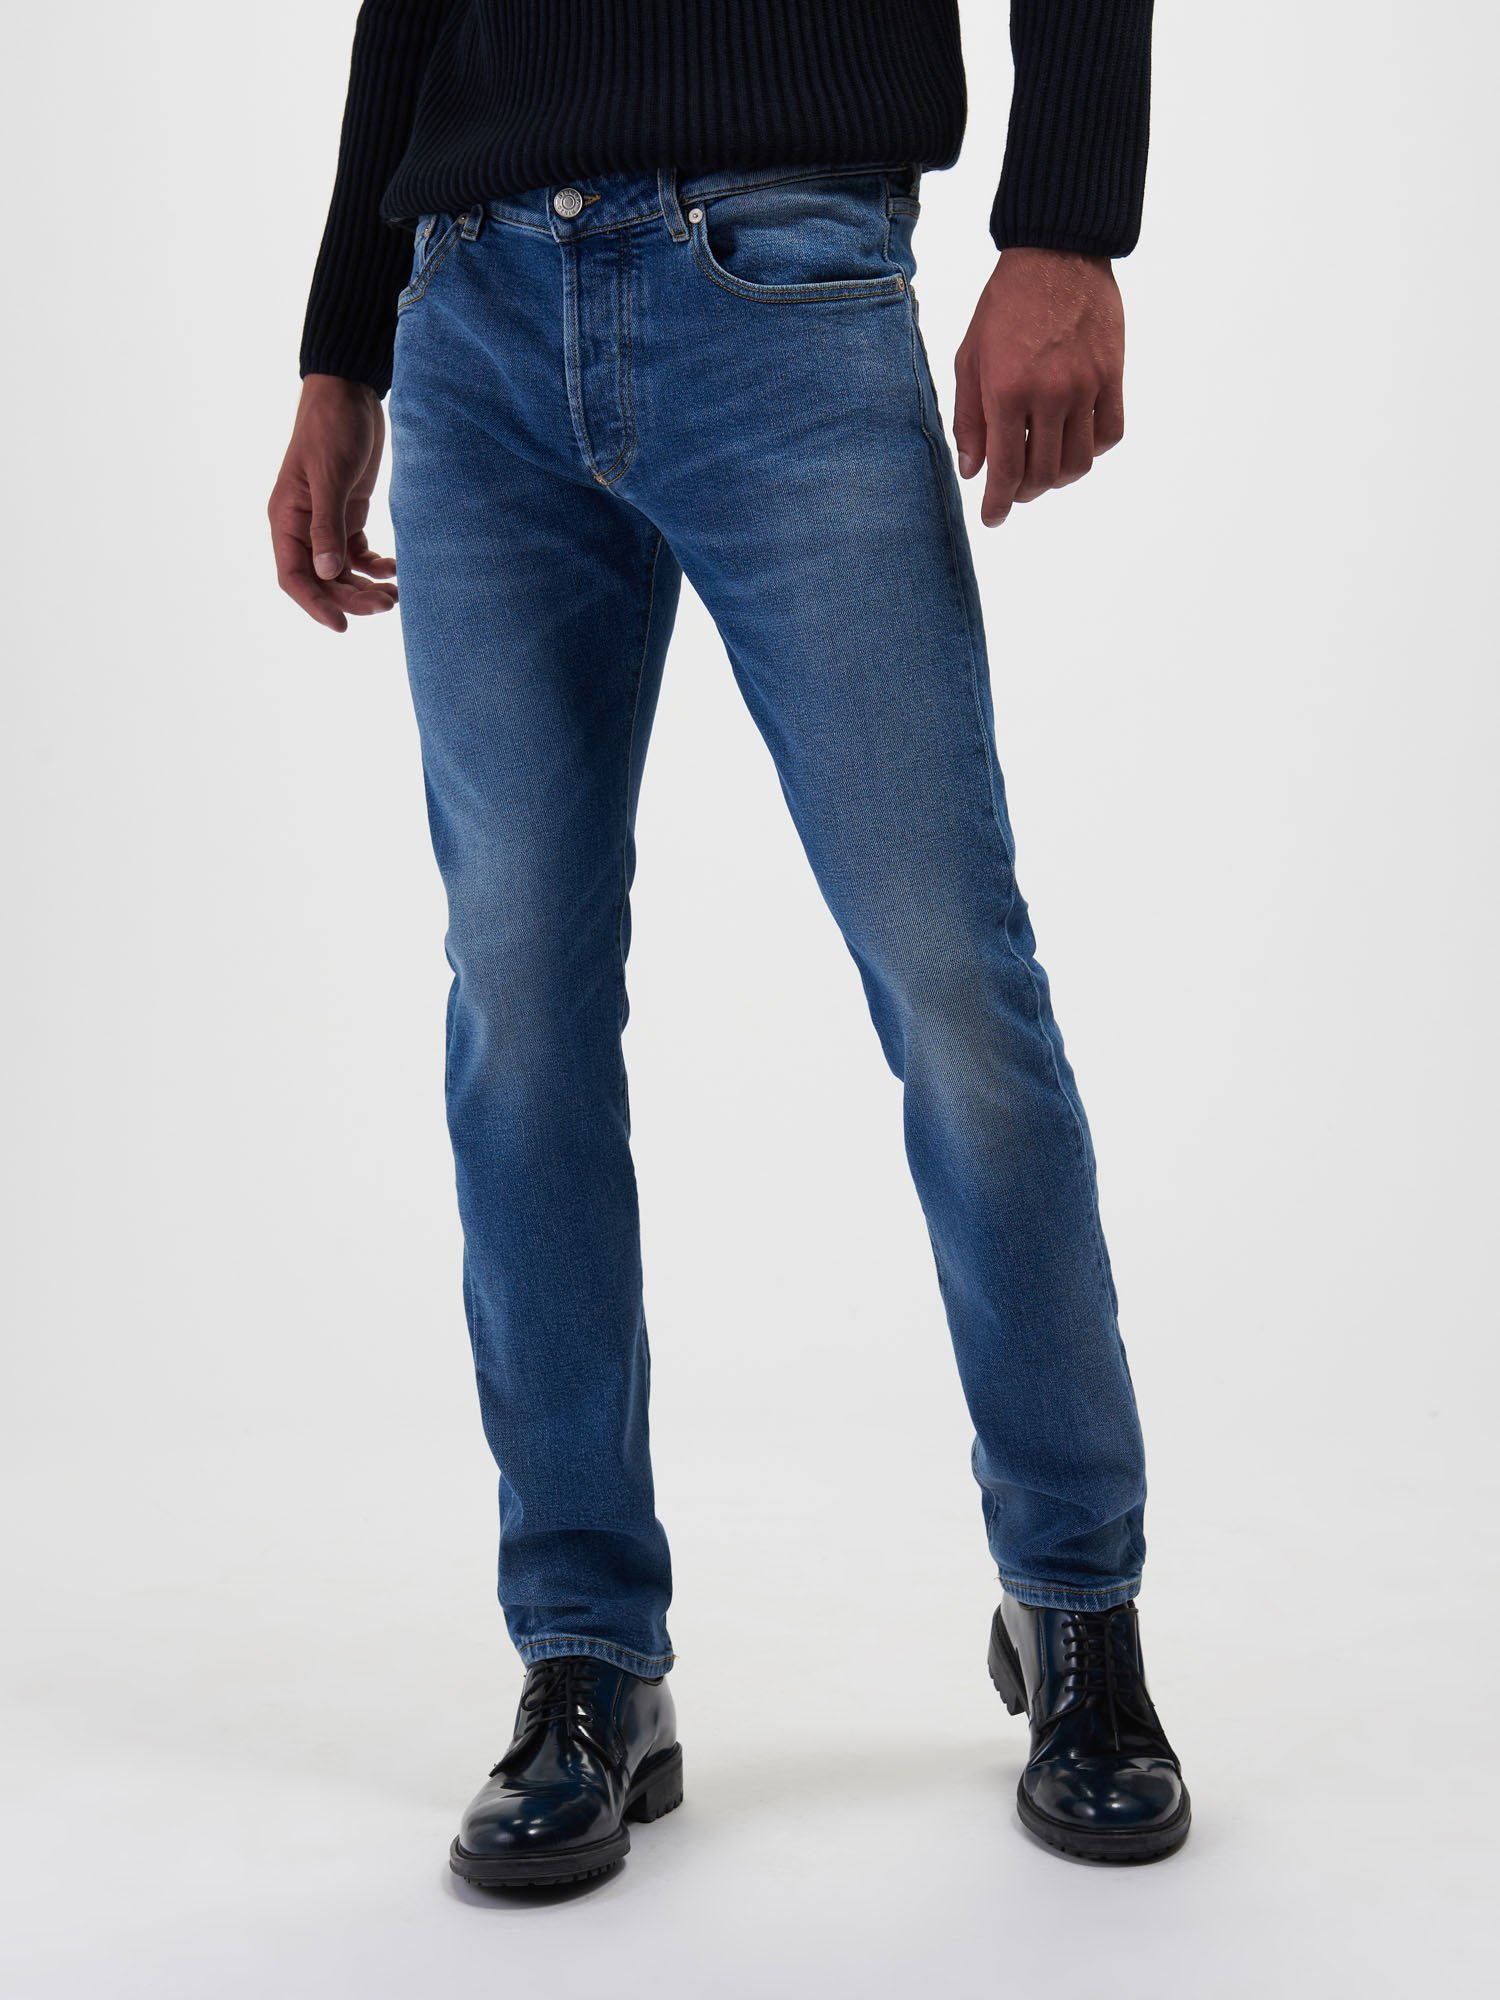 LIGHT BLUE STONE WASH JEANS - Blauer